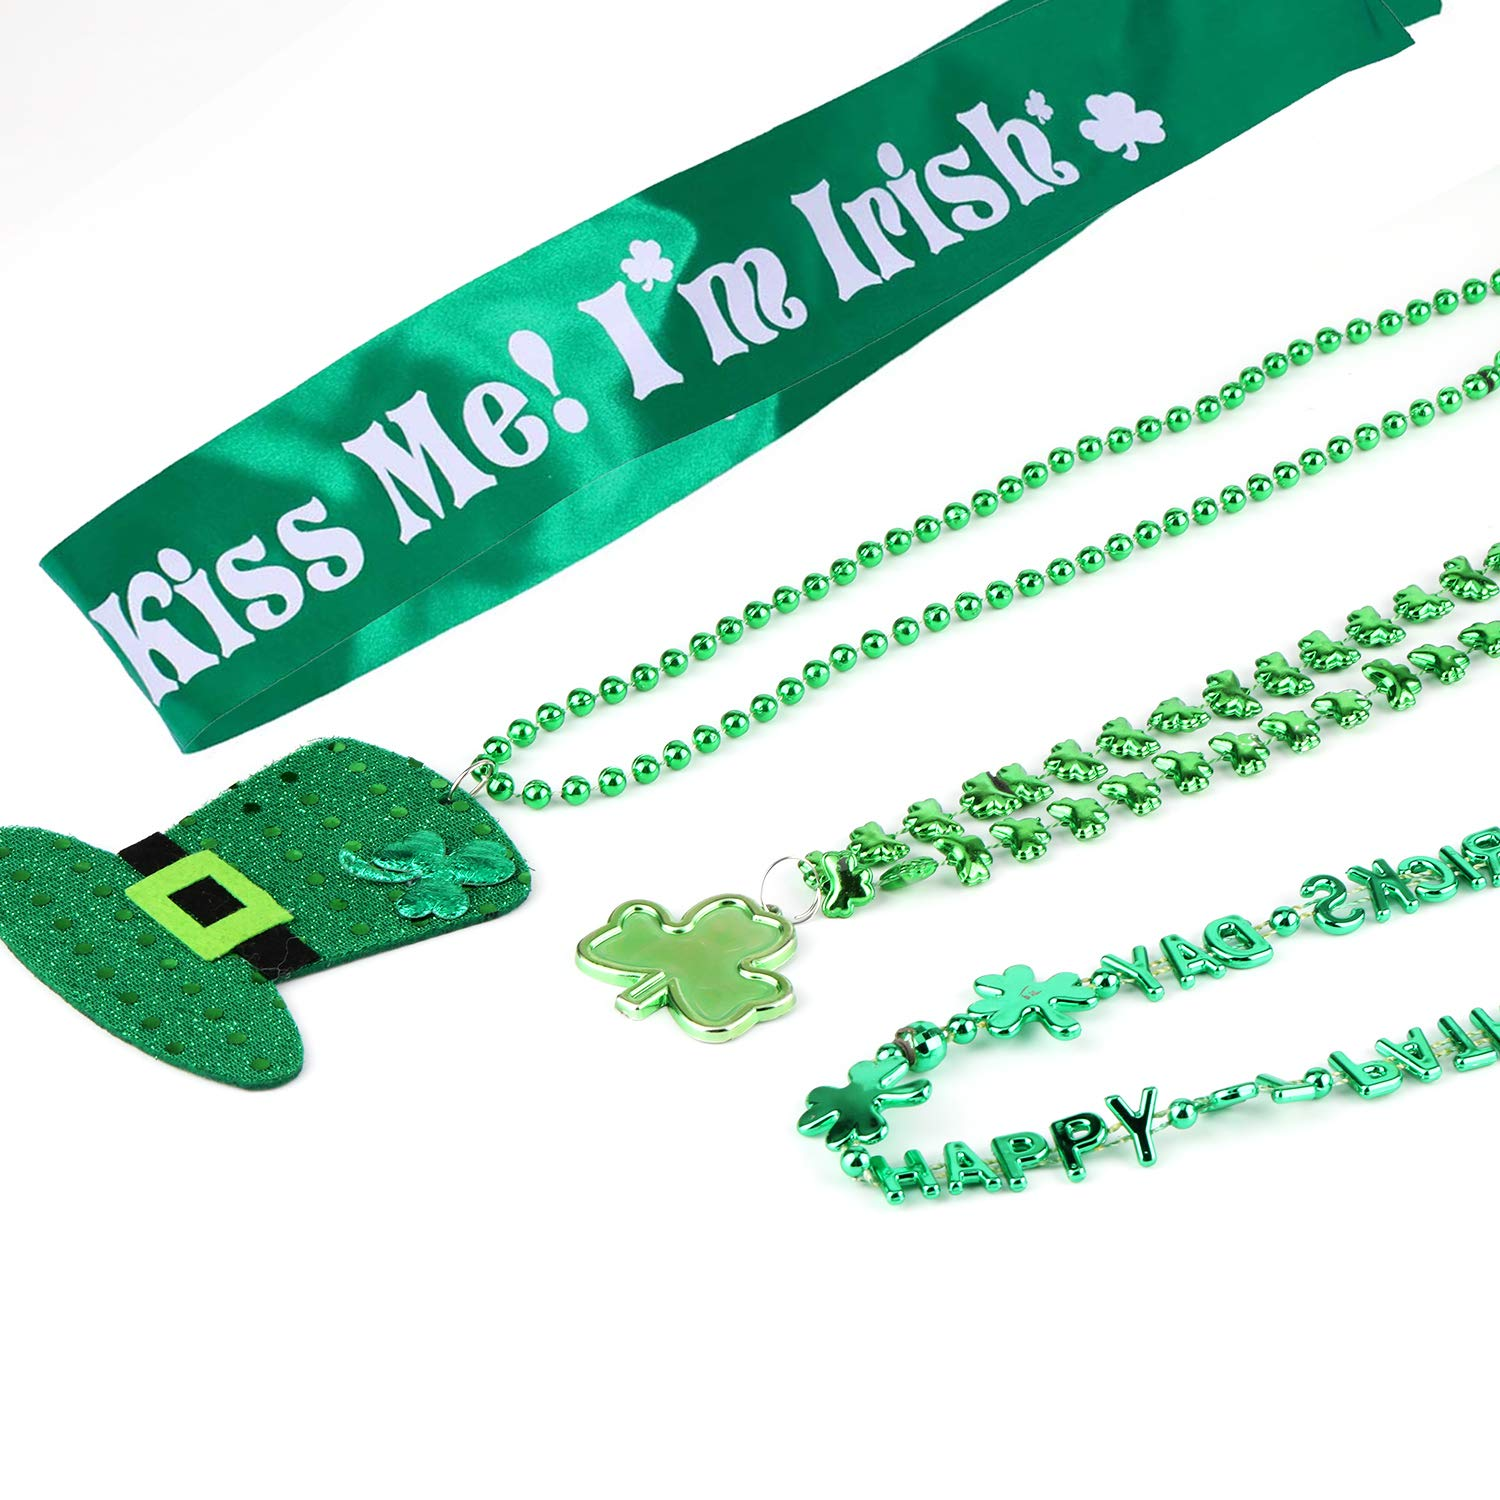 Clover Green Pendant Necklace Party Supplies 12 Pack Tobeape St Holiday Parades Irish Themed Patricks Day Accessories Shamrock Necklace Irish Hat Green Bead Necklace and Shoulder Strap